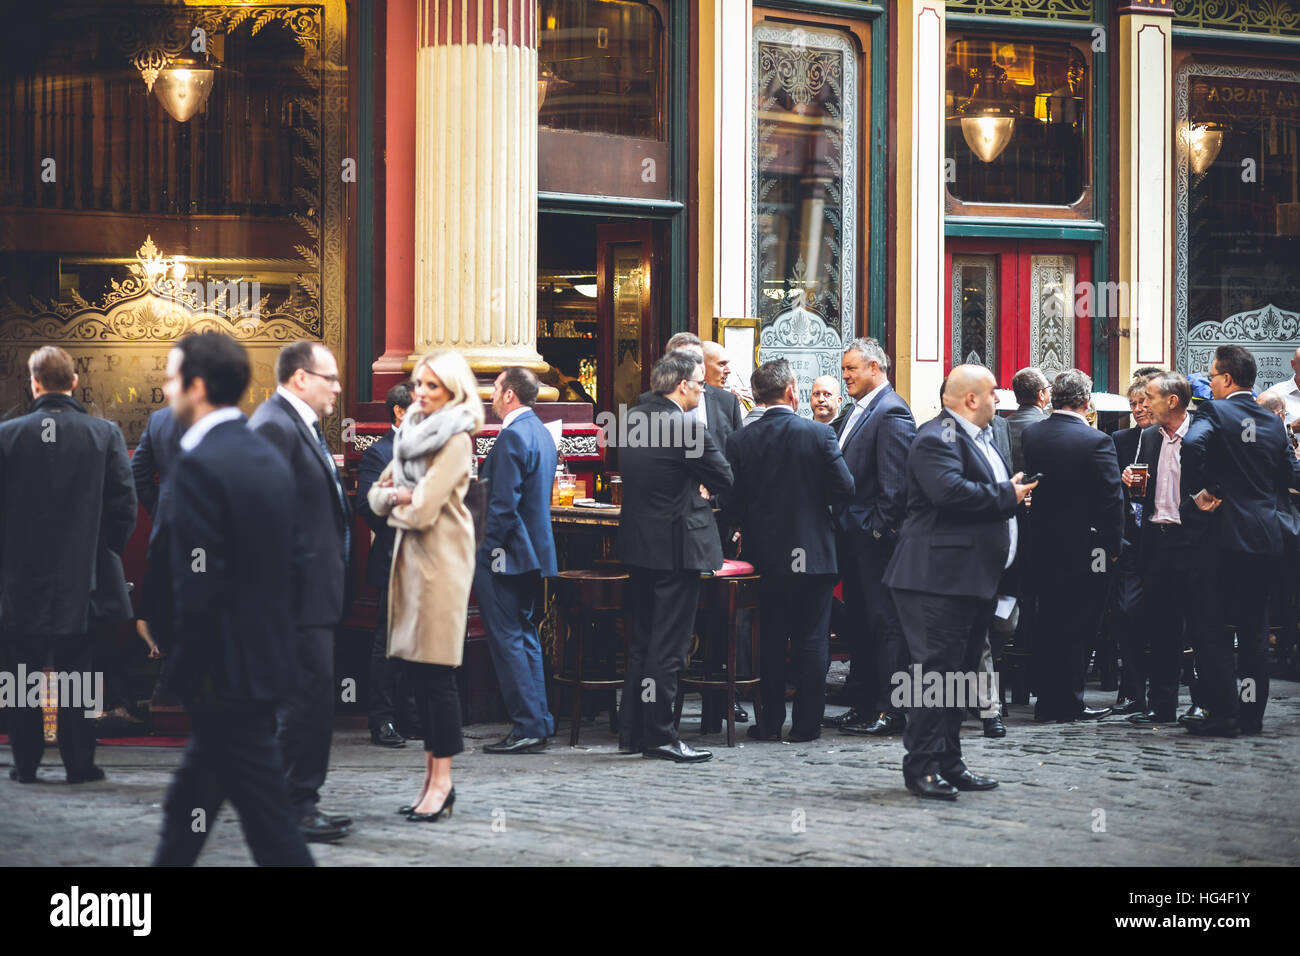 London Leadenhall Market, large group of business men socializes on a lunch break - Stock Image